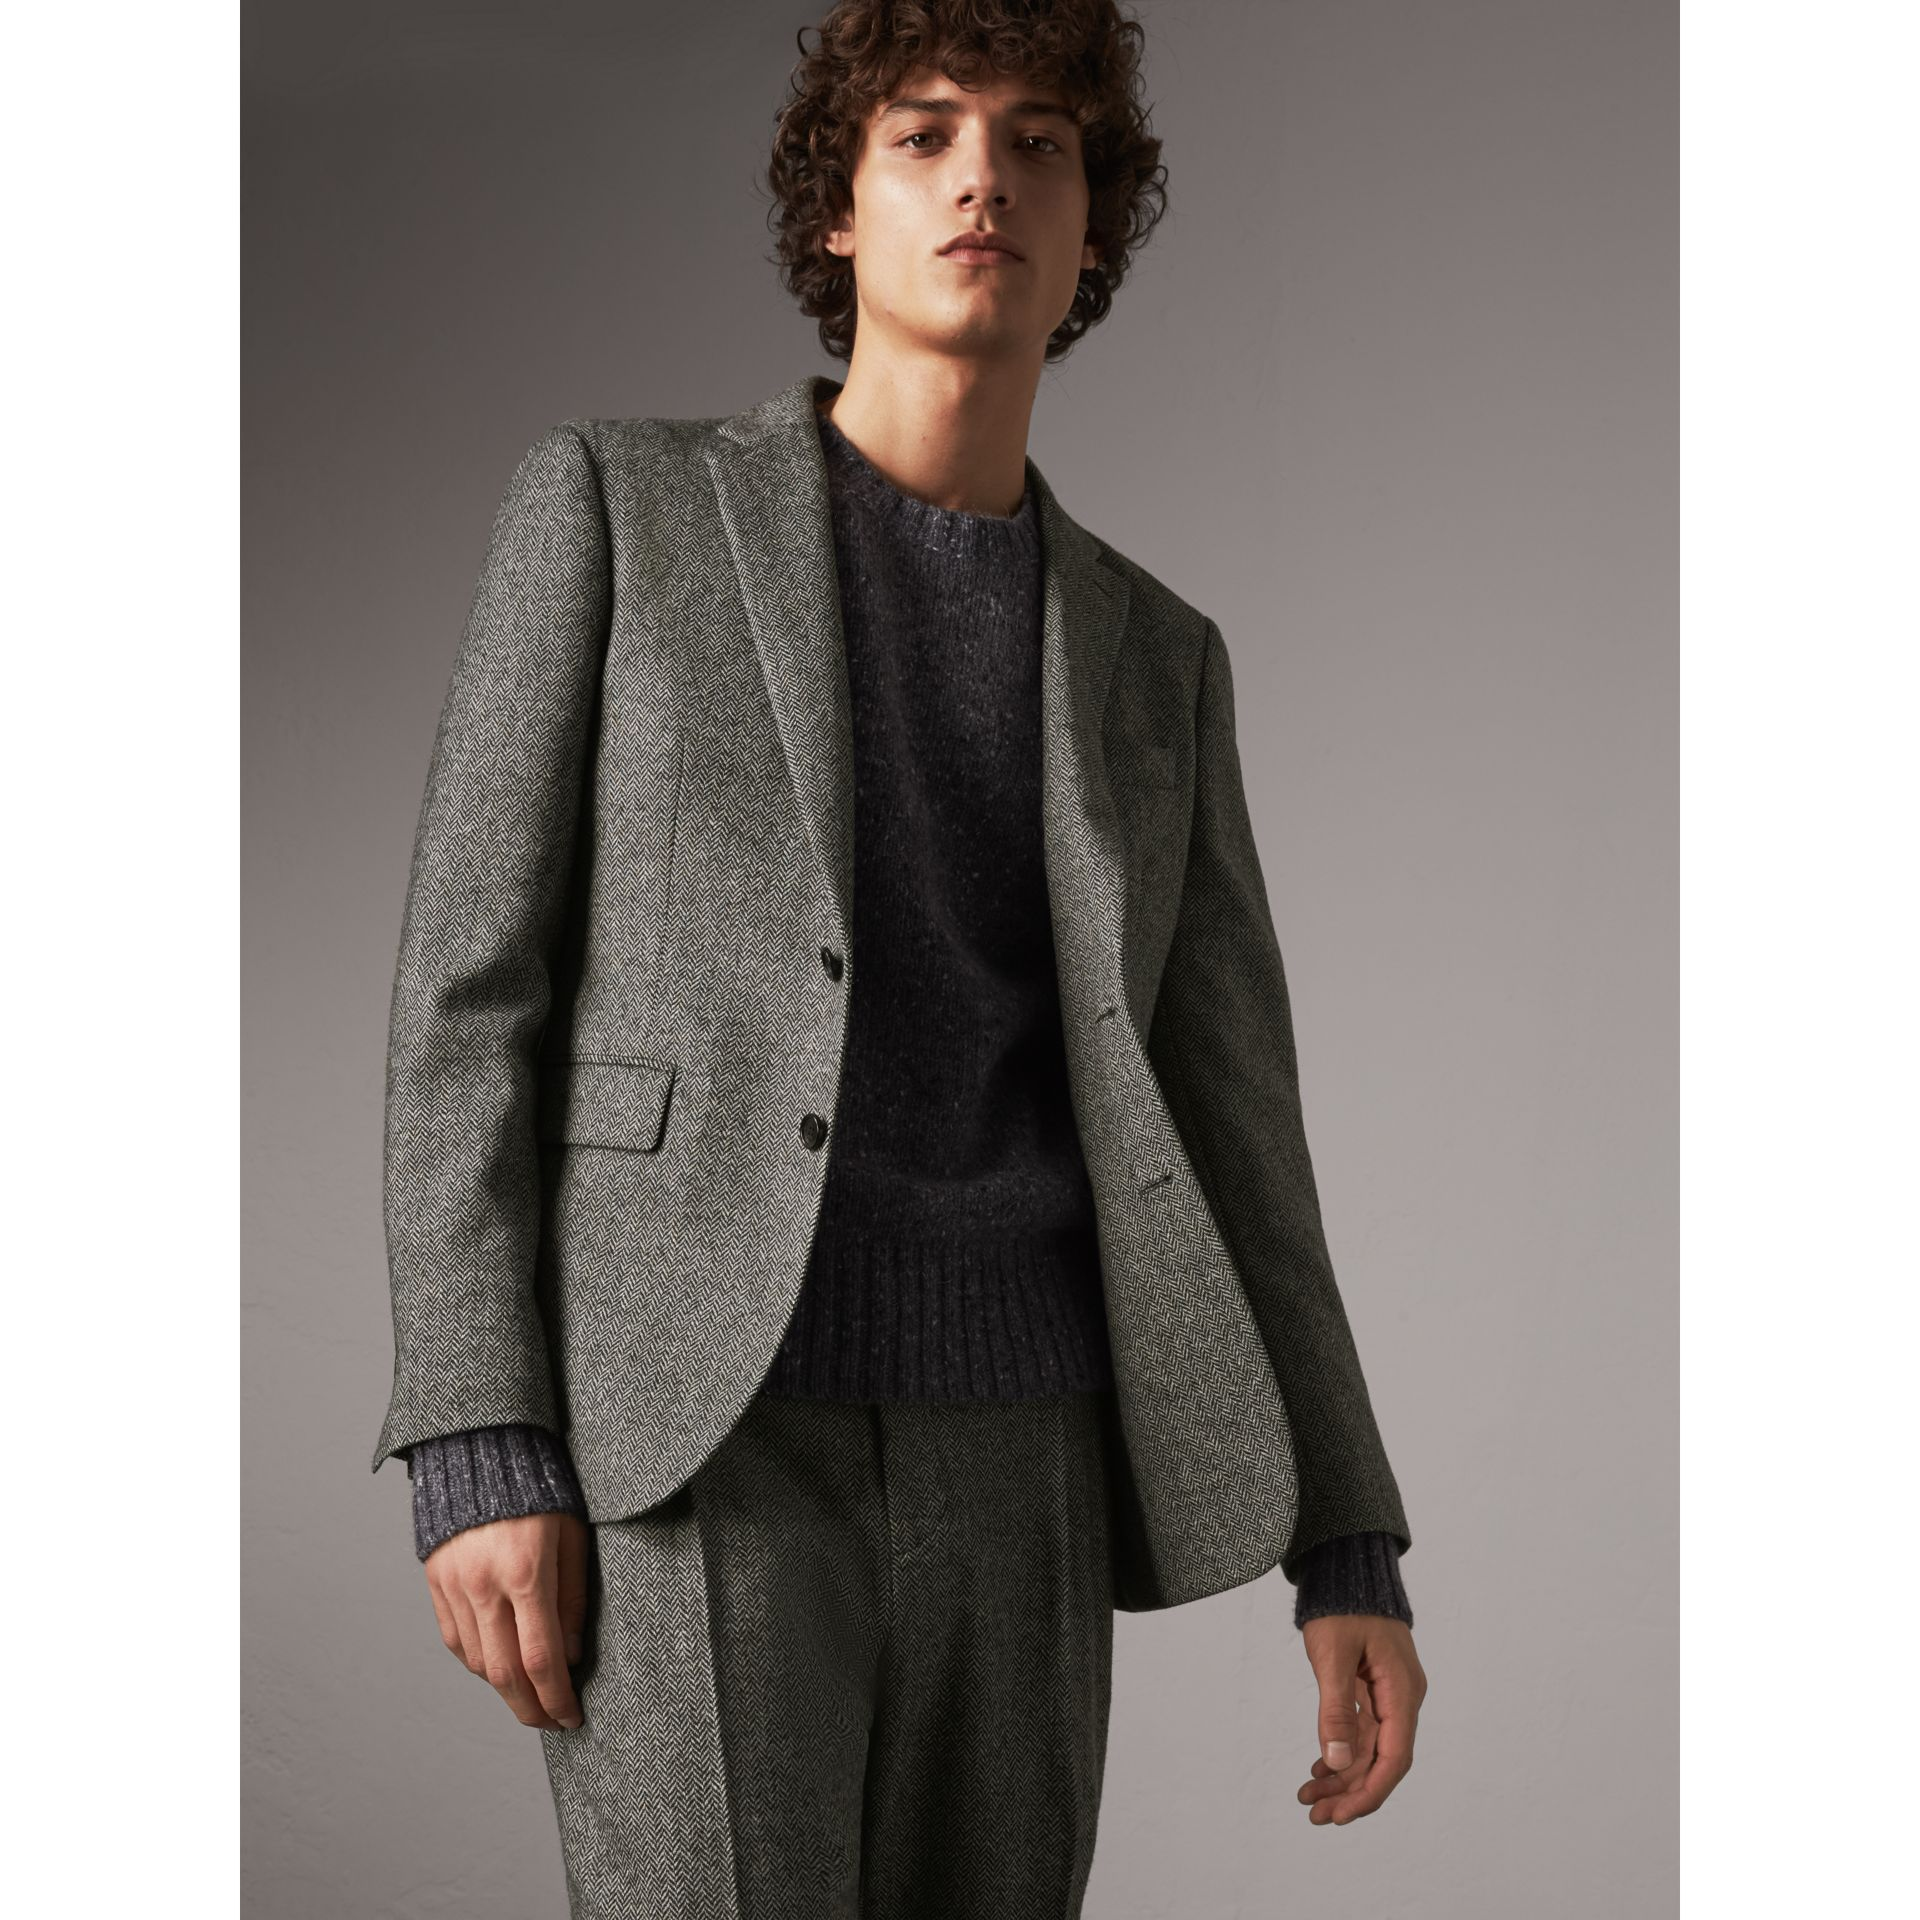 Soho Fit Herringbone Wool Tailored Jacket in Black / White - Men | Burberry Singapore - gallery image 7